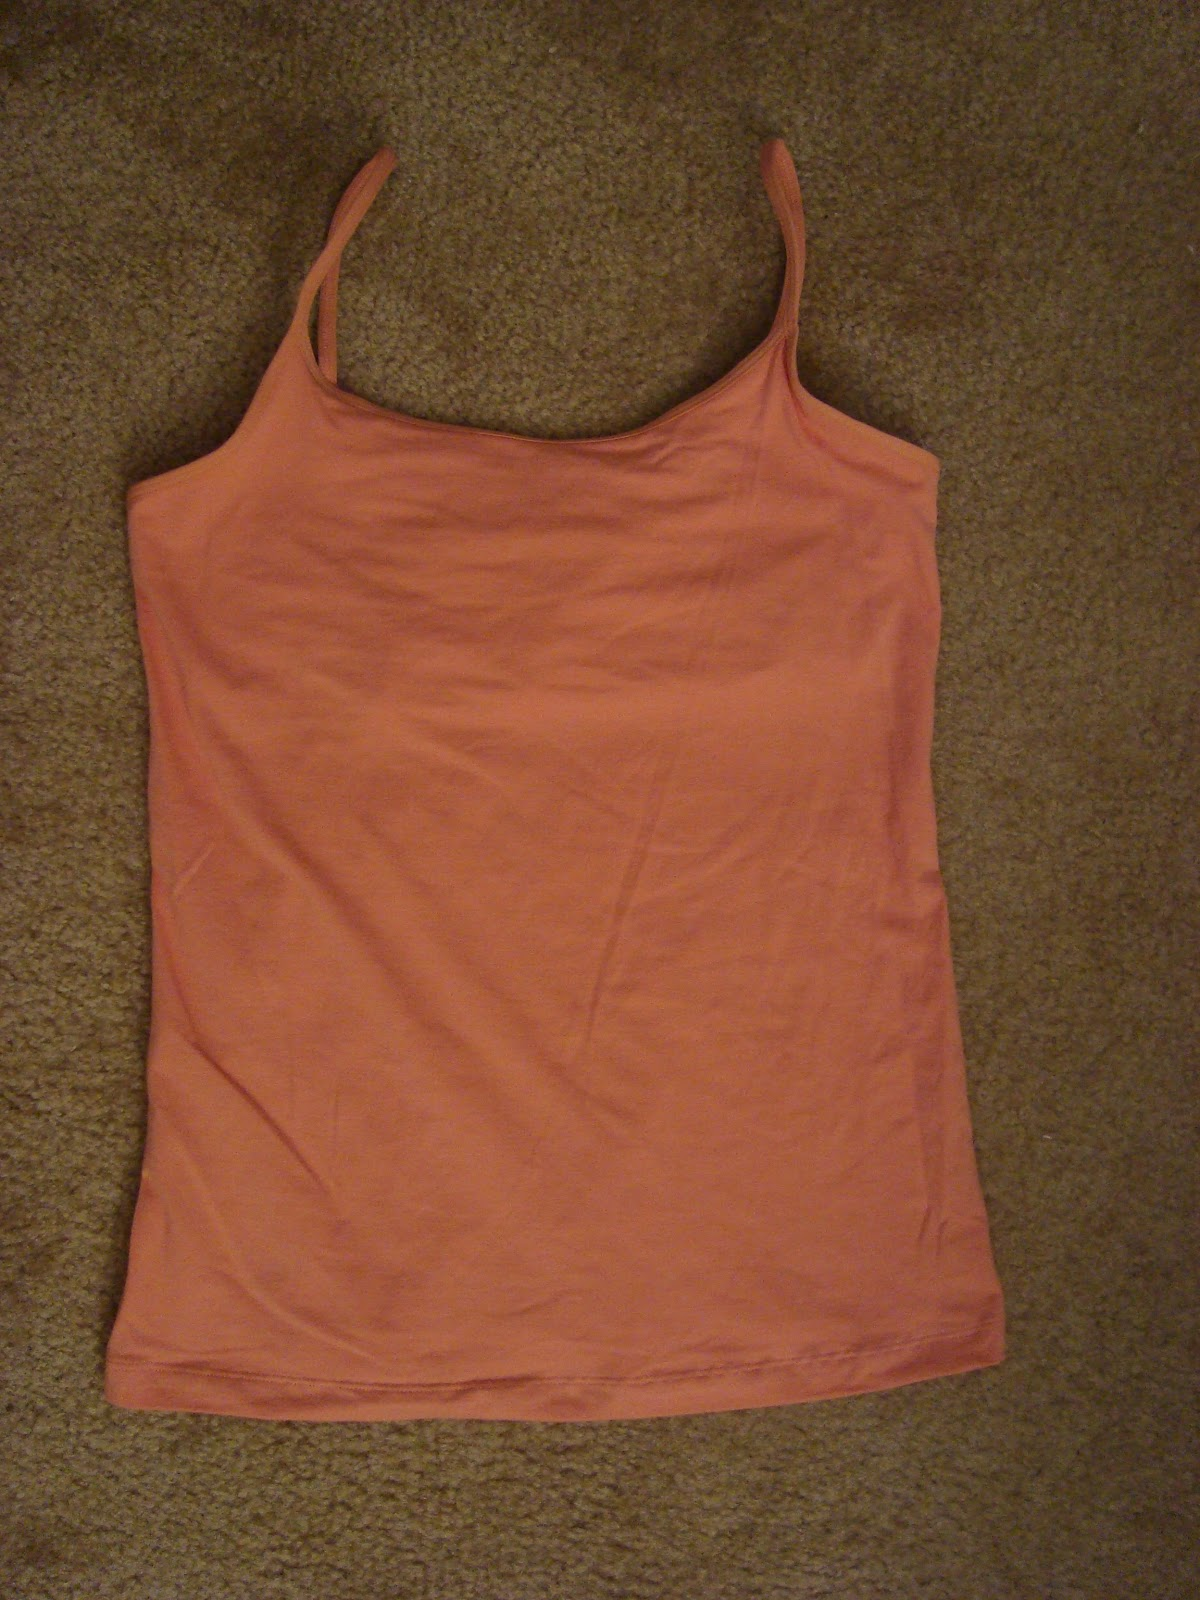 JWo Designs: DIY Sweetheart Bandeau Top [with link to tutorial]